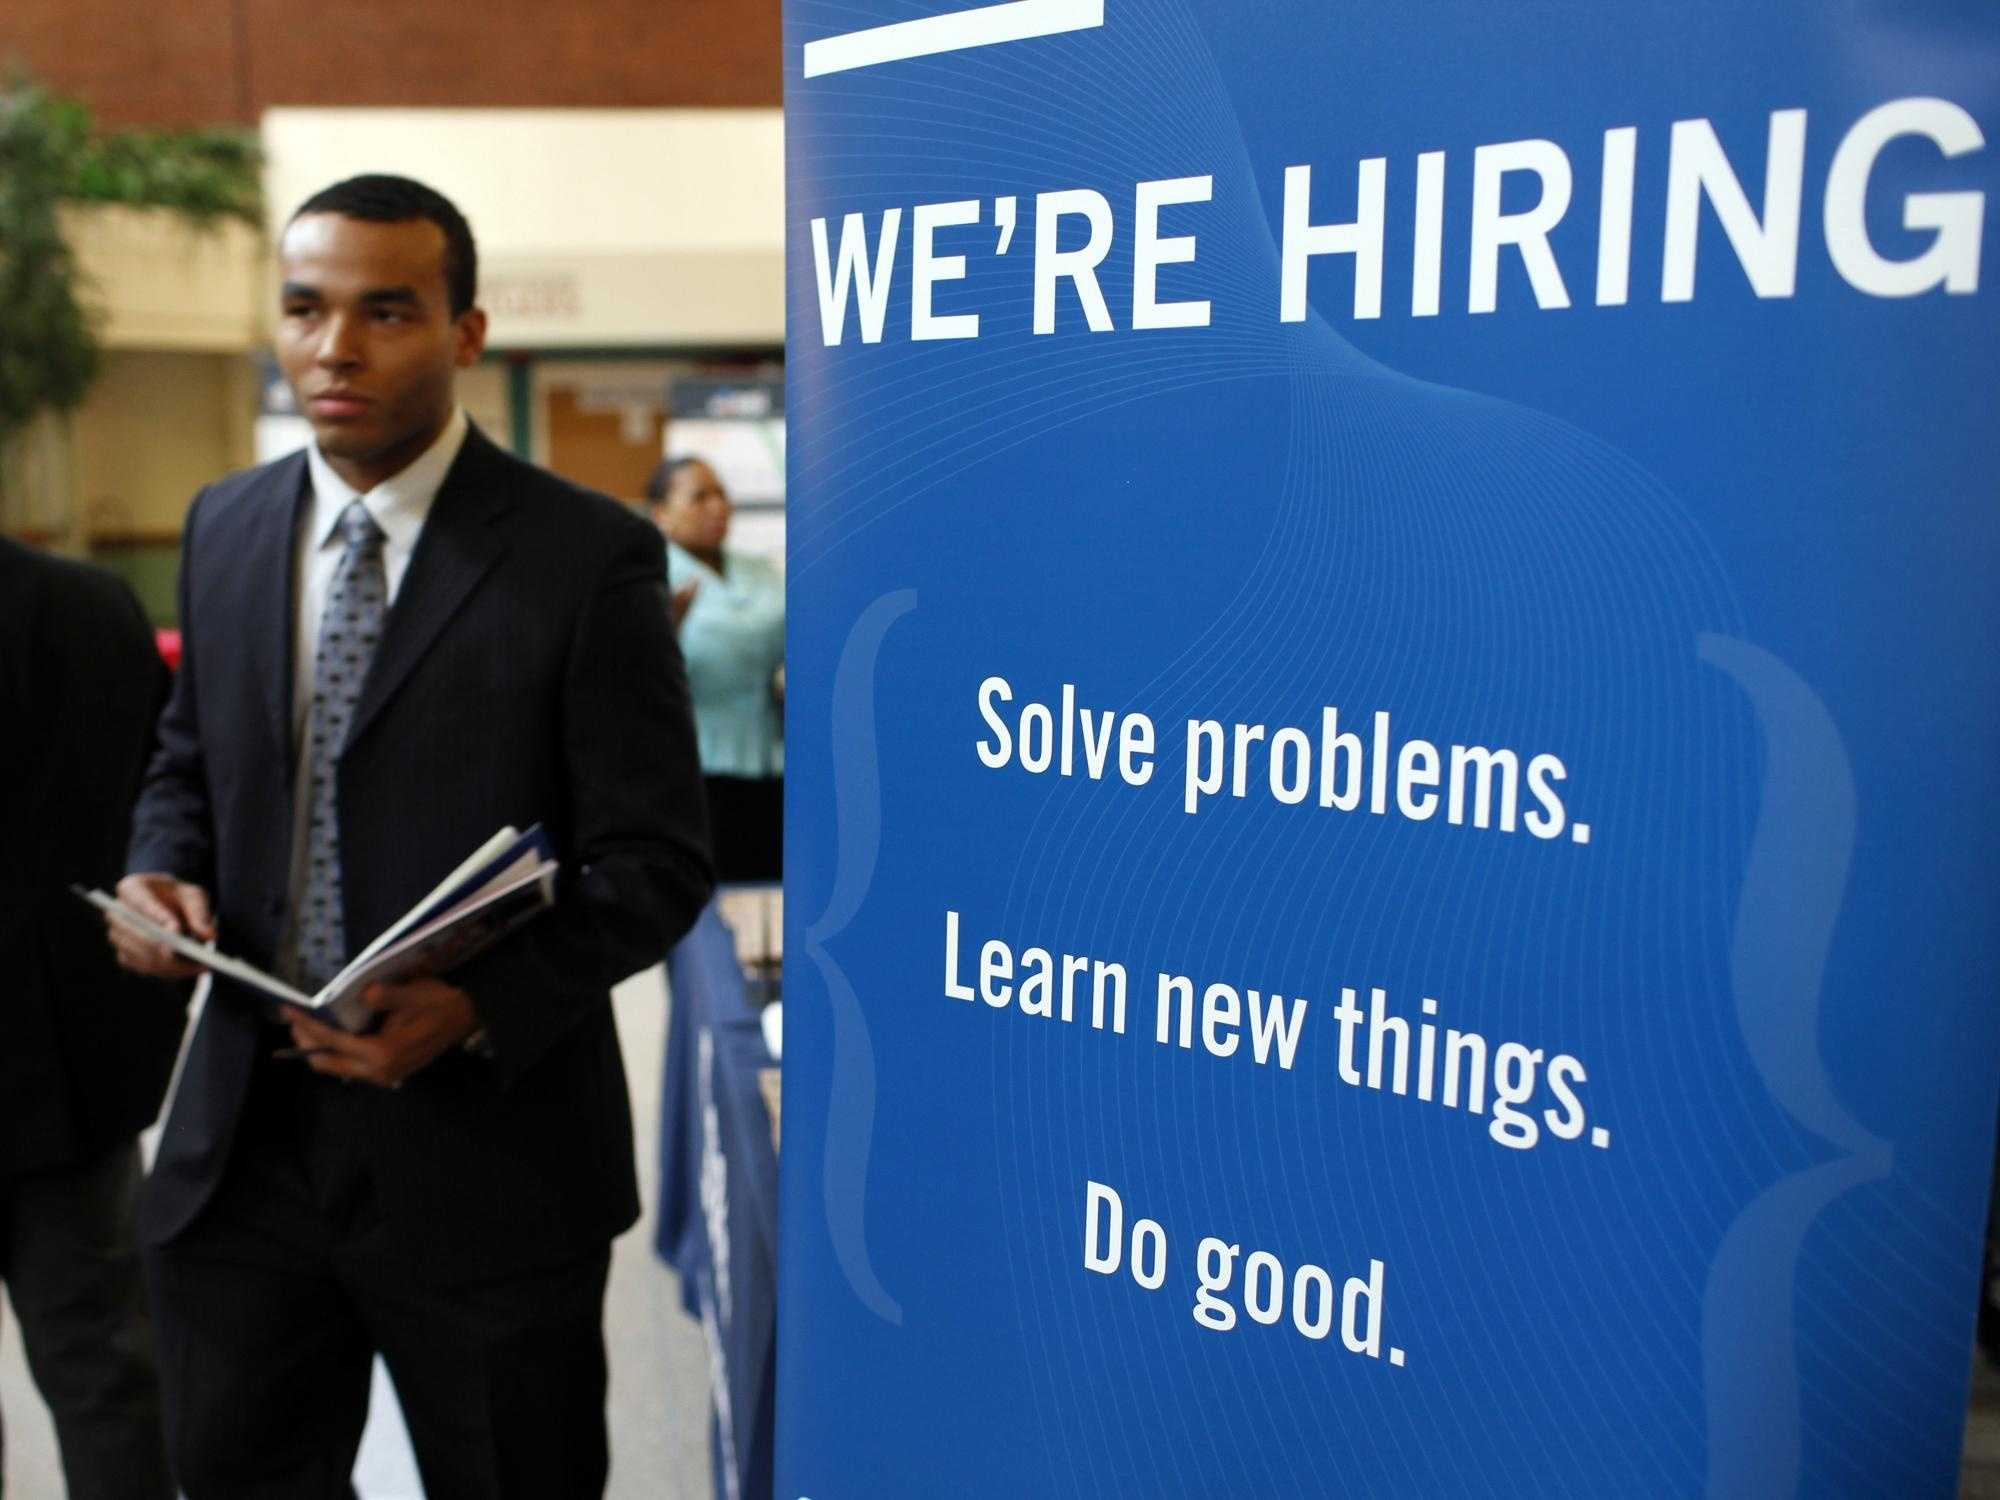 January Payroll Growth Strengthens, But Wage Growth Slows